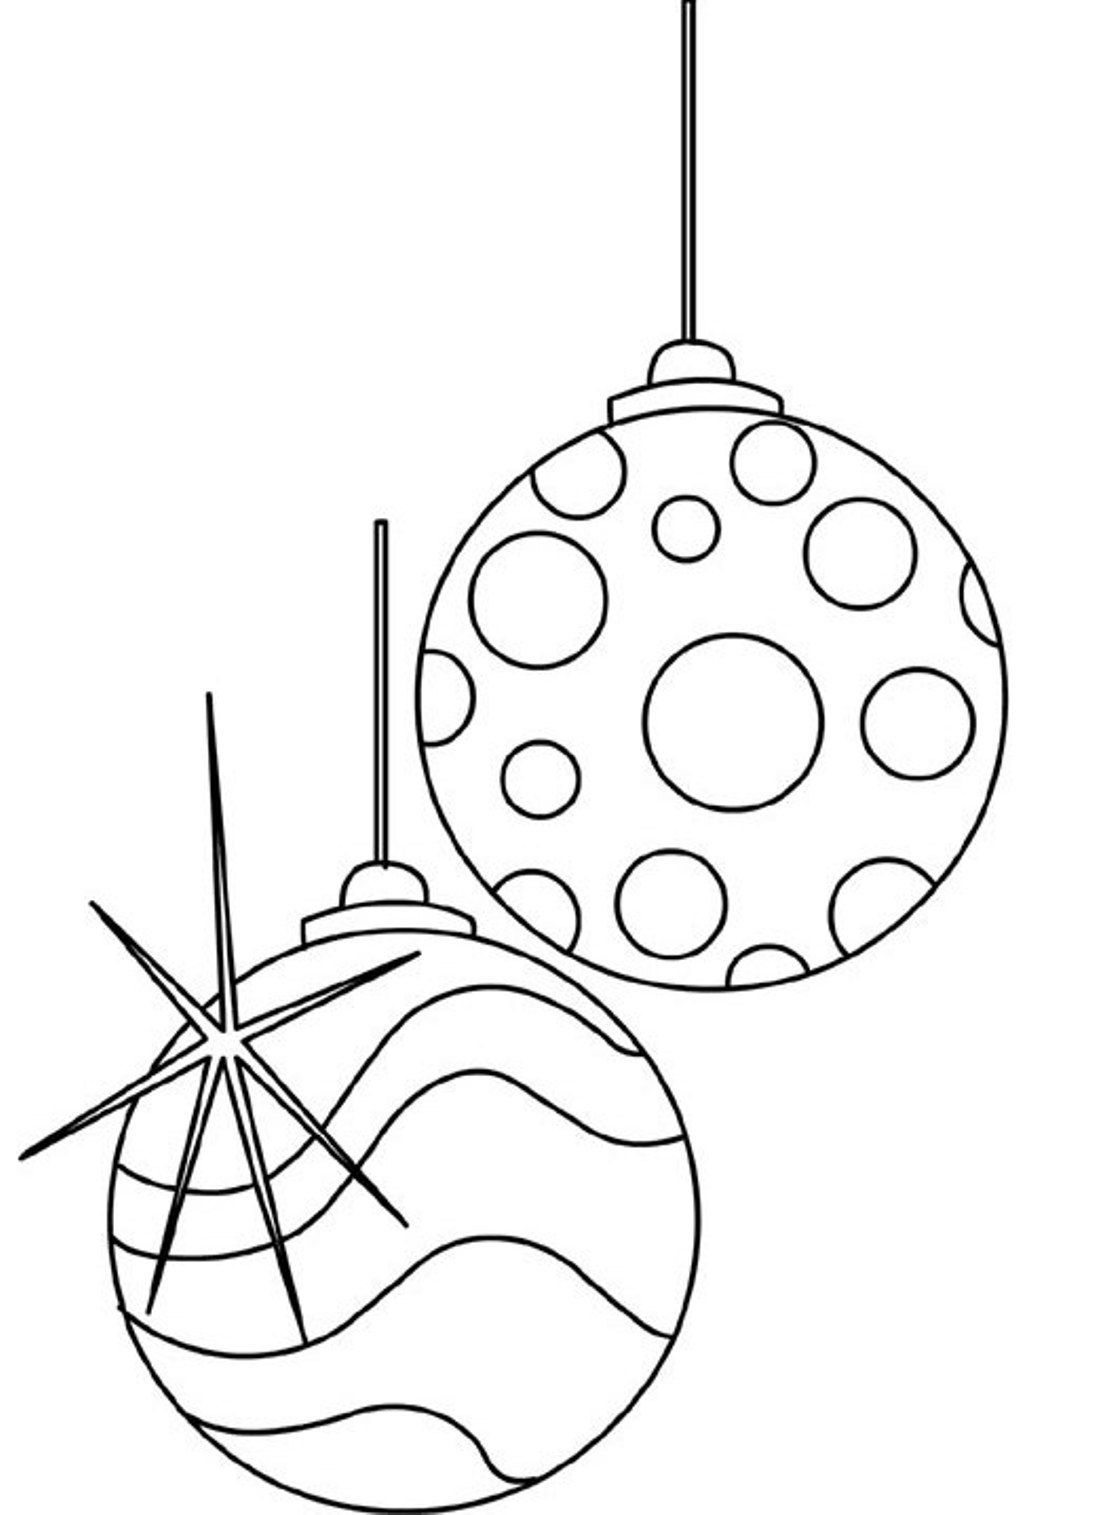 Christmas Ornament Clip Art Black And White Christmas Ornaments Coloring Pages Printable Coloring Home